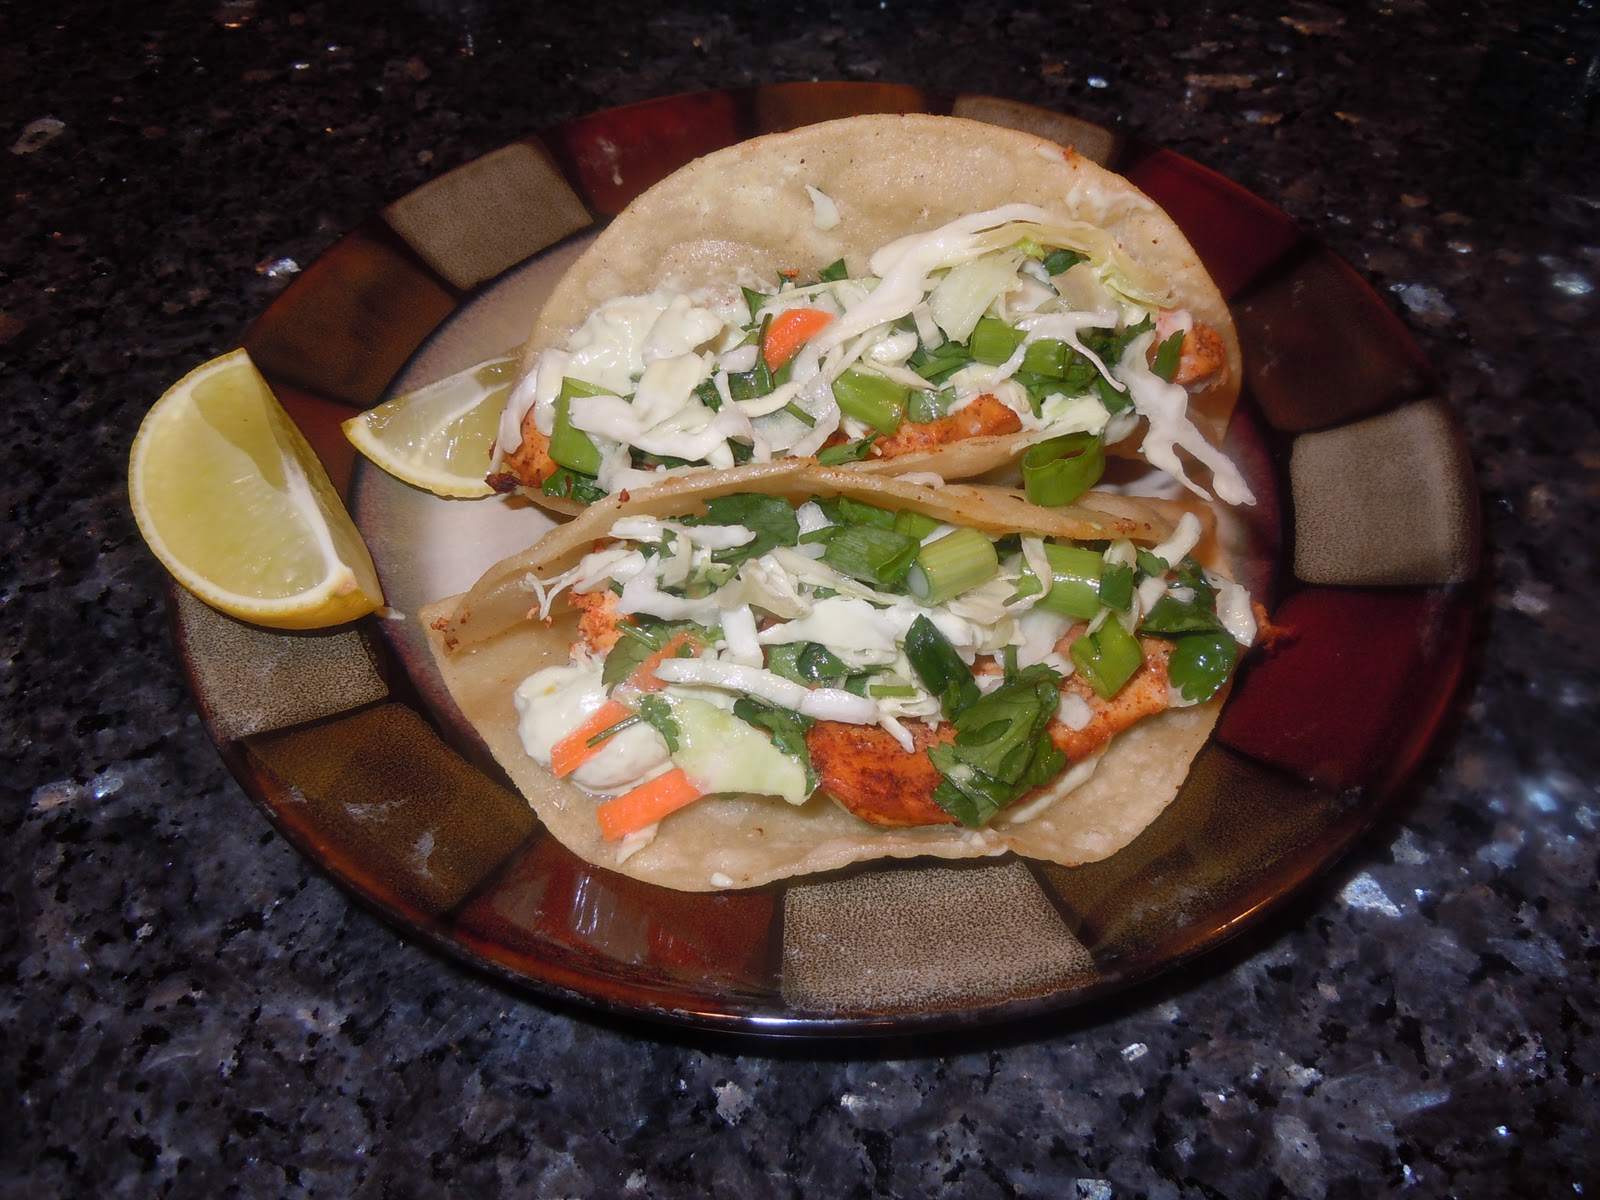 ... Loves To Cook: Chicken Tacos with Avocado Cream Sauce and Lime Slaw